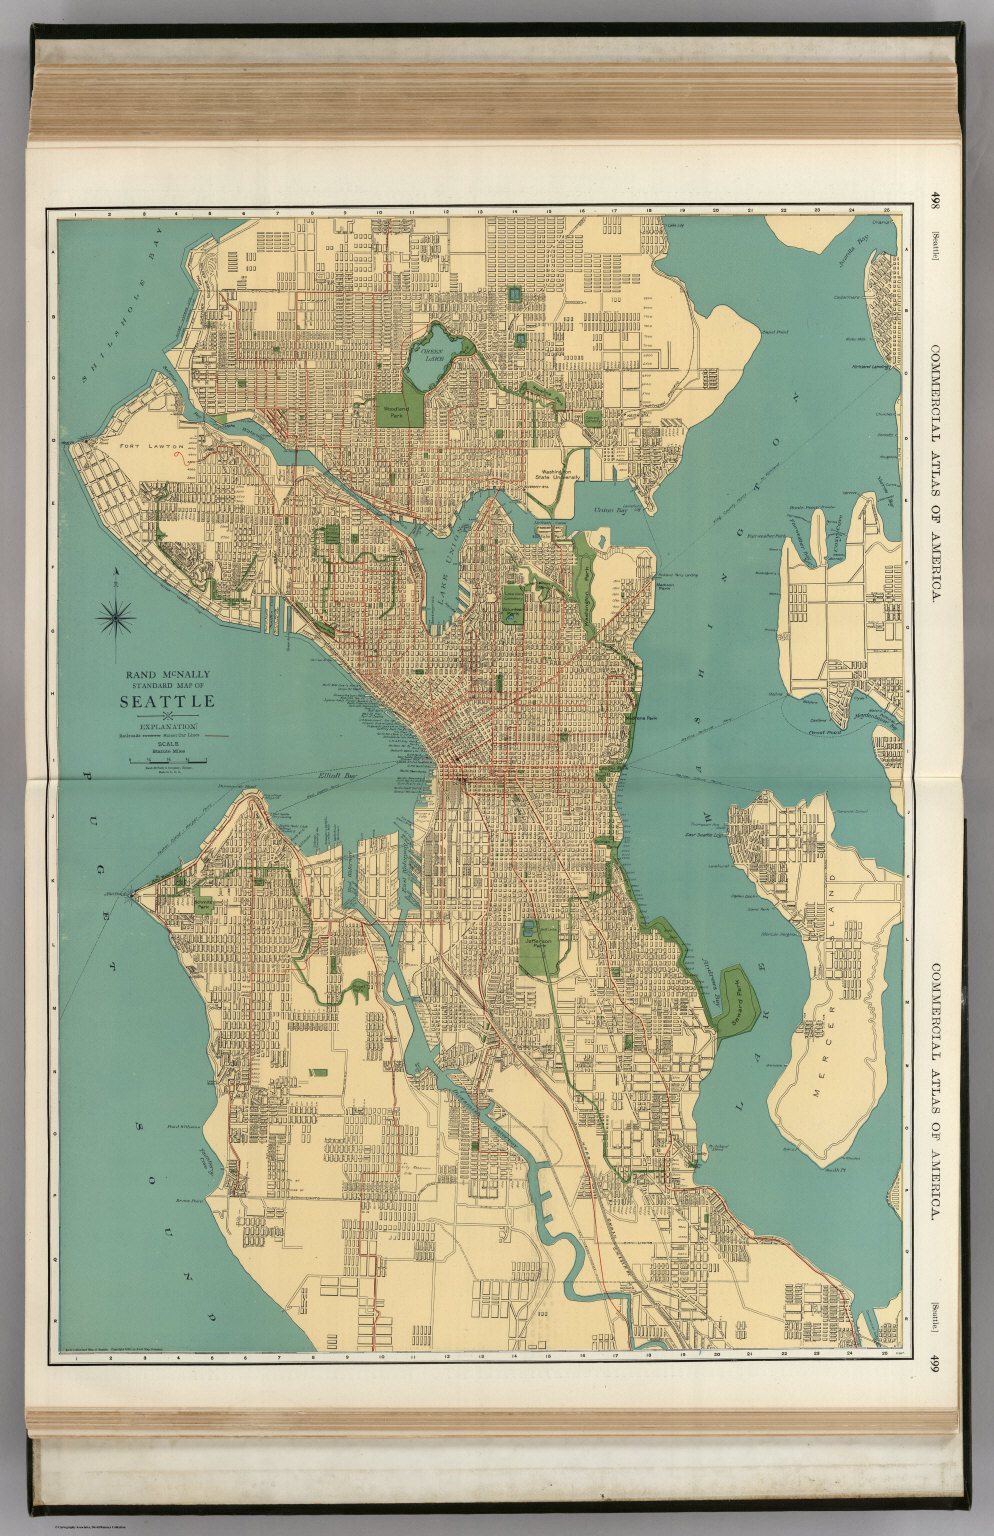 Seattle David Rumsey Historical Map Collection